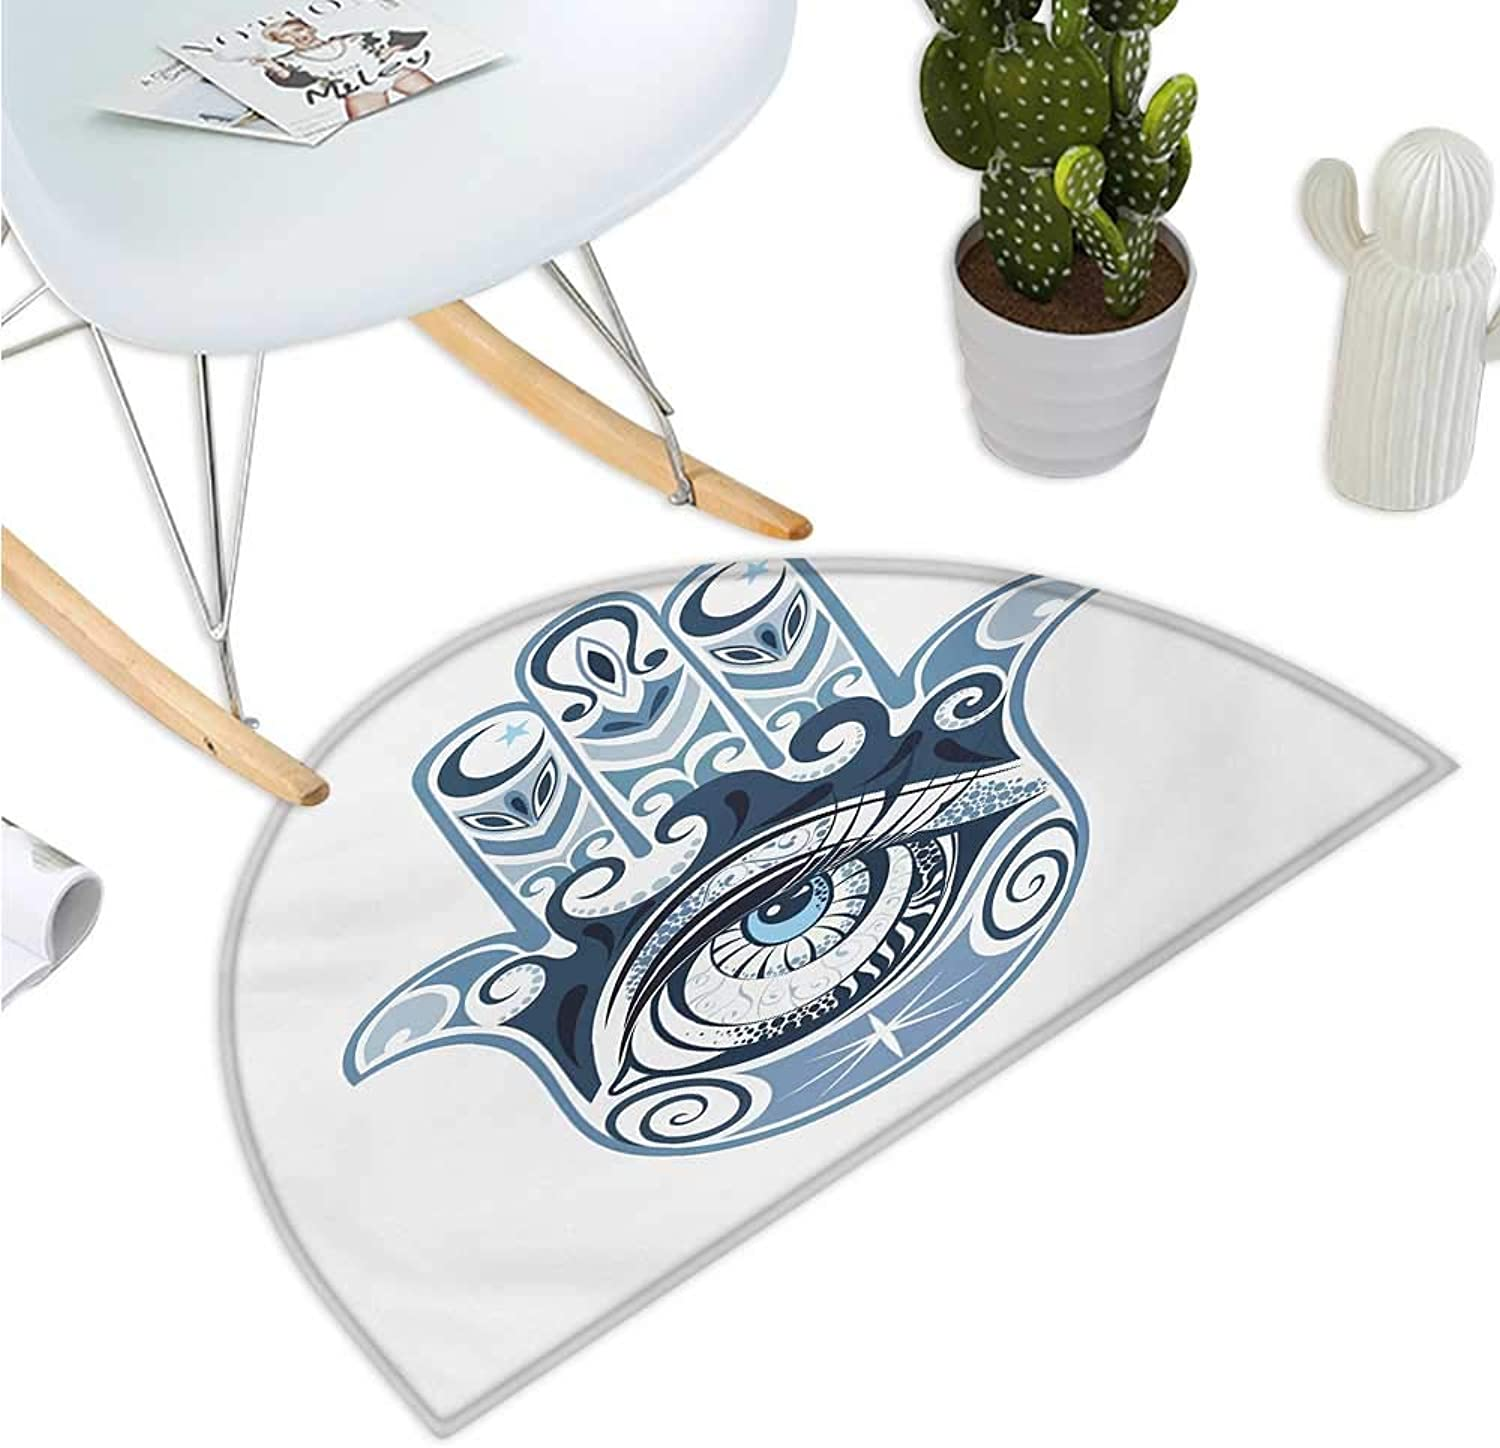 Evil Eye Semicircle Doormat Cultural Good Luck Amulet Hand Drawn Artsy Magical Superstitious Sacred Halfmoon doormats H 43.3  xD 64.9  Dark bluee Pale bluee